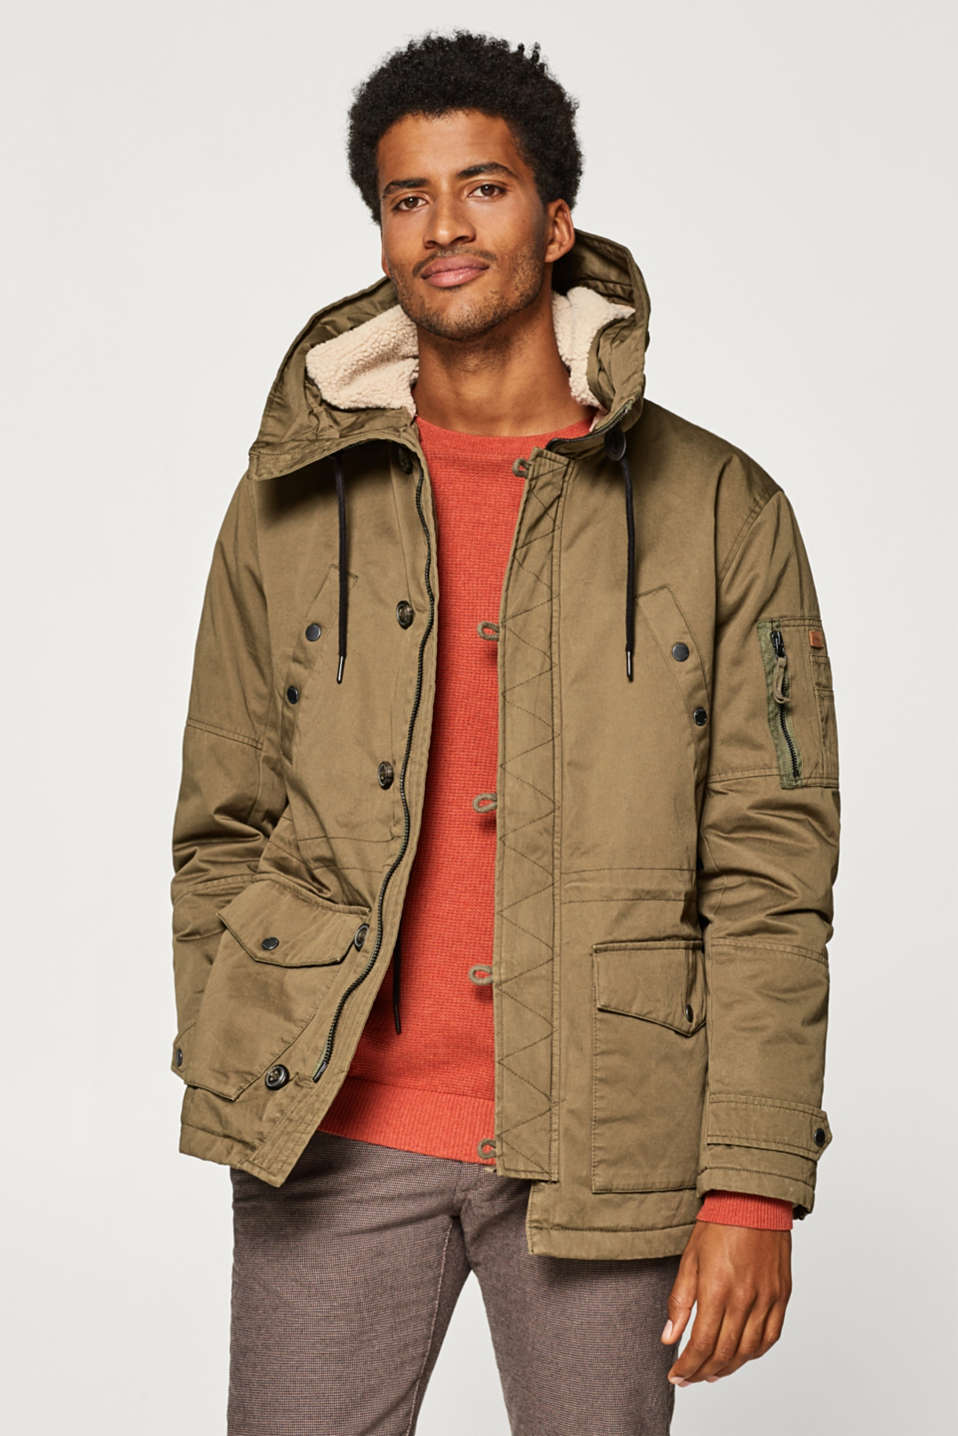 Esprit - Short parka with teddy bear fur hood, made of cotton